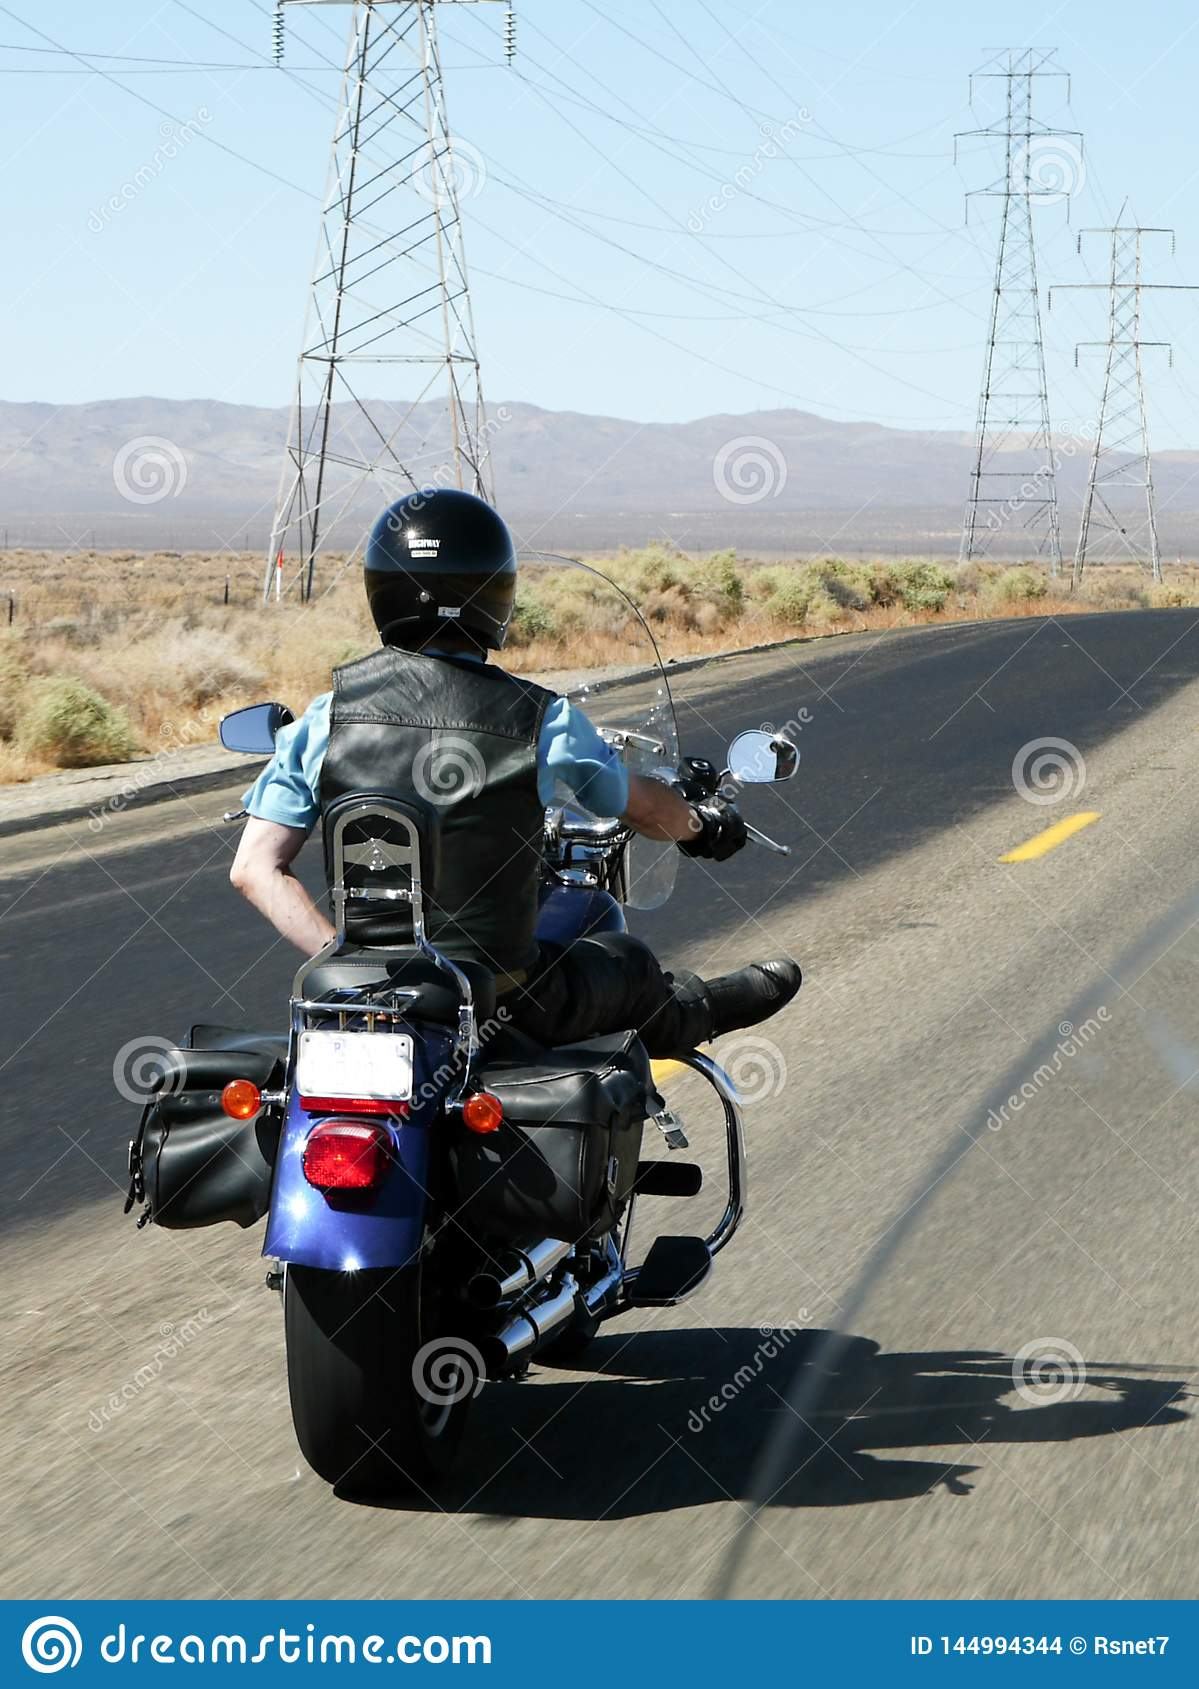 Motorcyclist rides one-handed through the desert